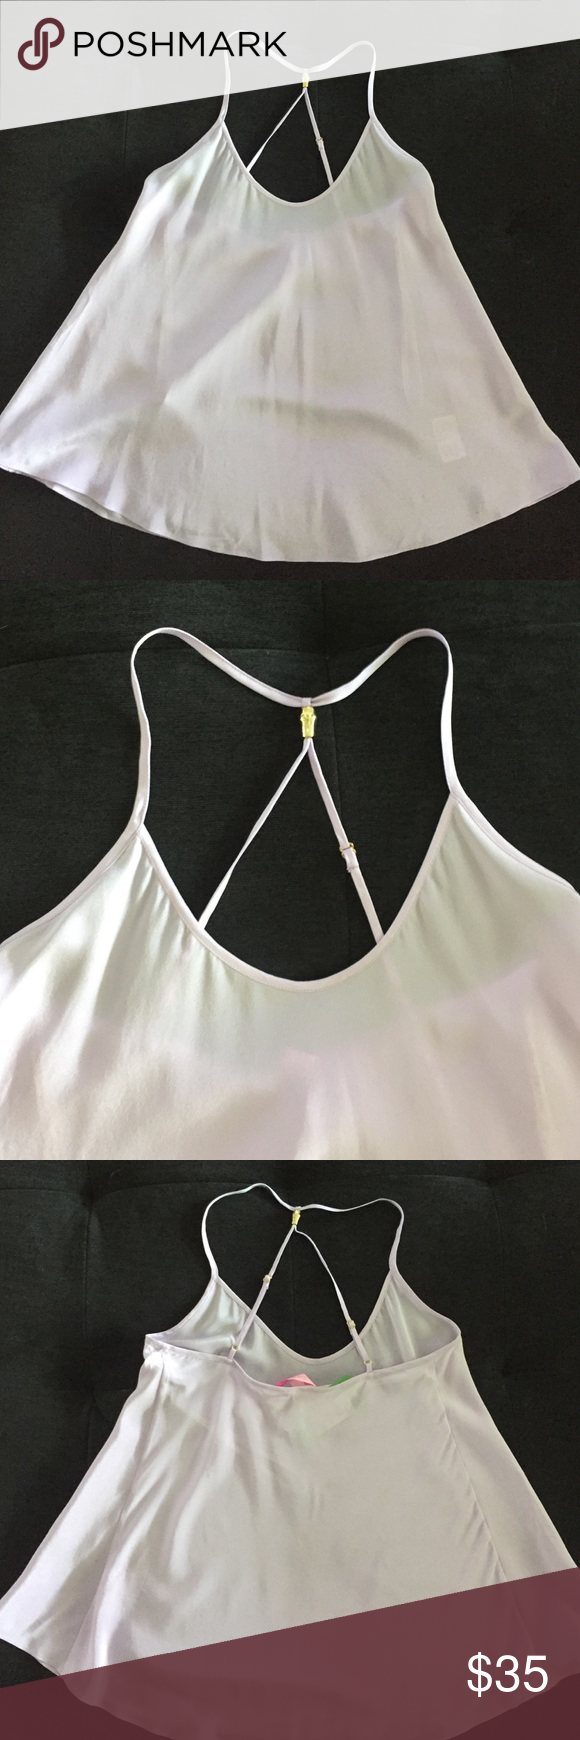 Lilly Pulitzer silk tank Light lavender 100% silk tank that has never been worn and has the original tag attached. Lilly Pulitzer Tops Tank Tops